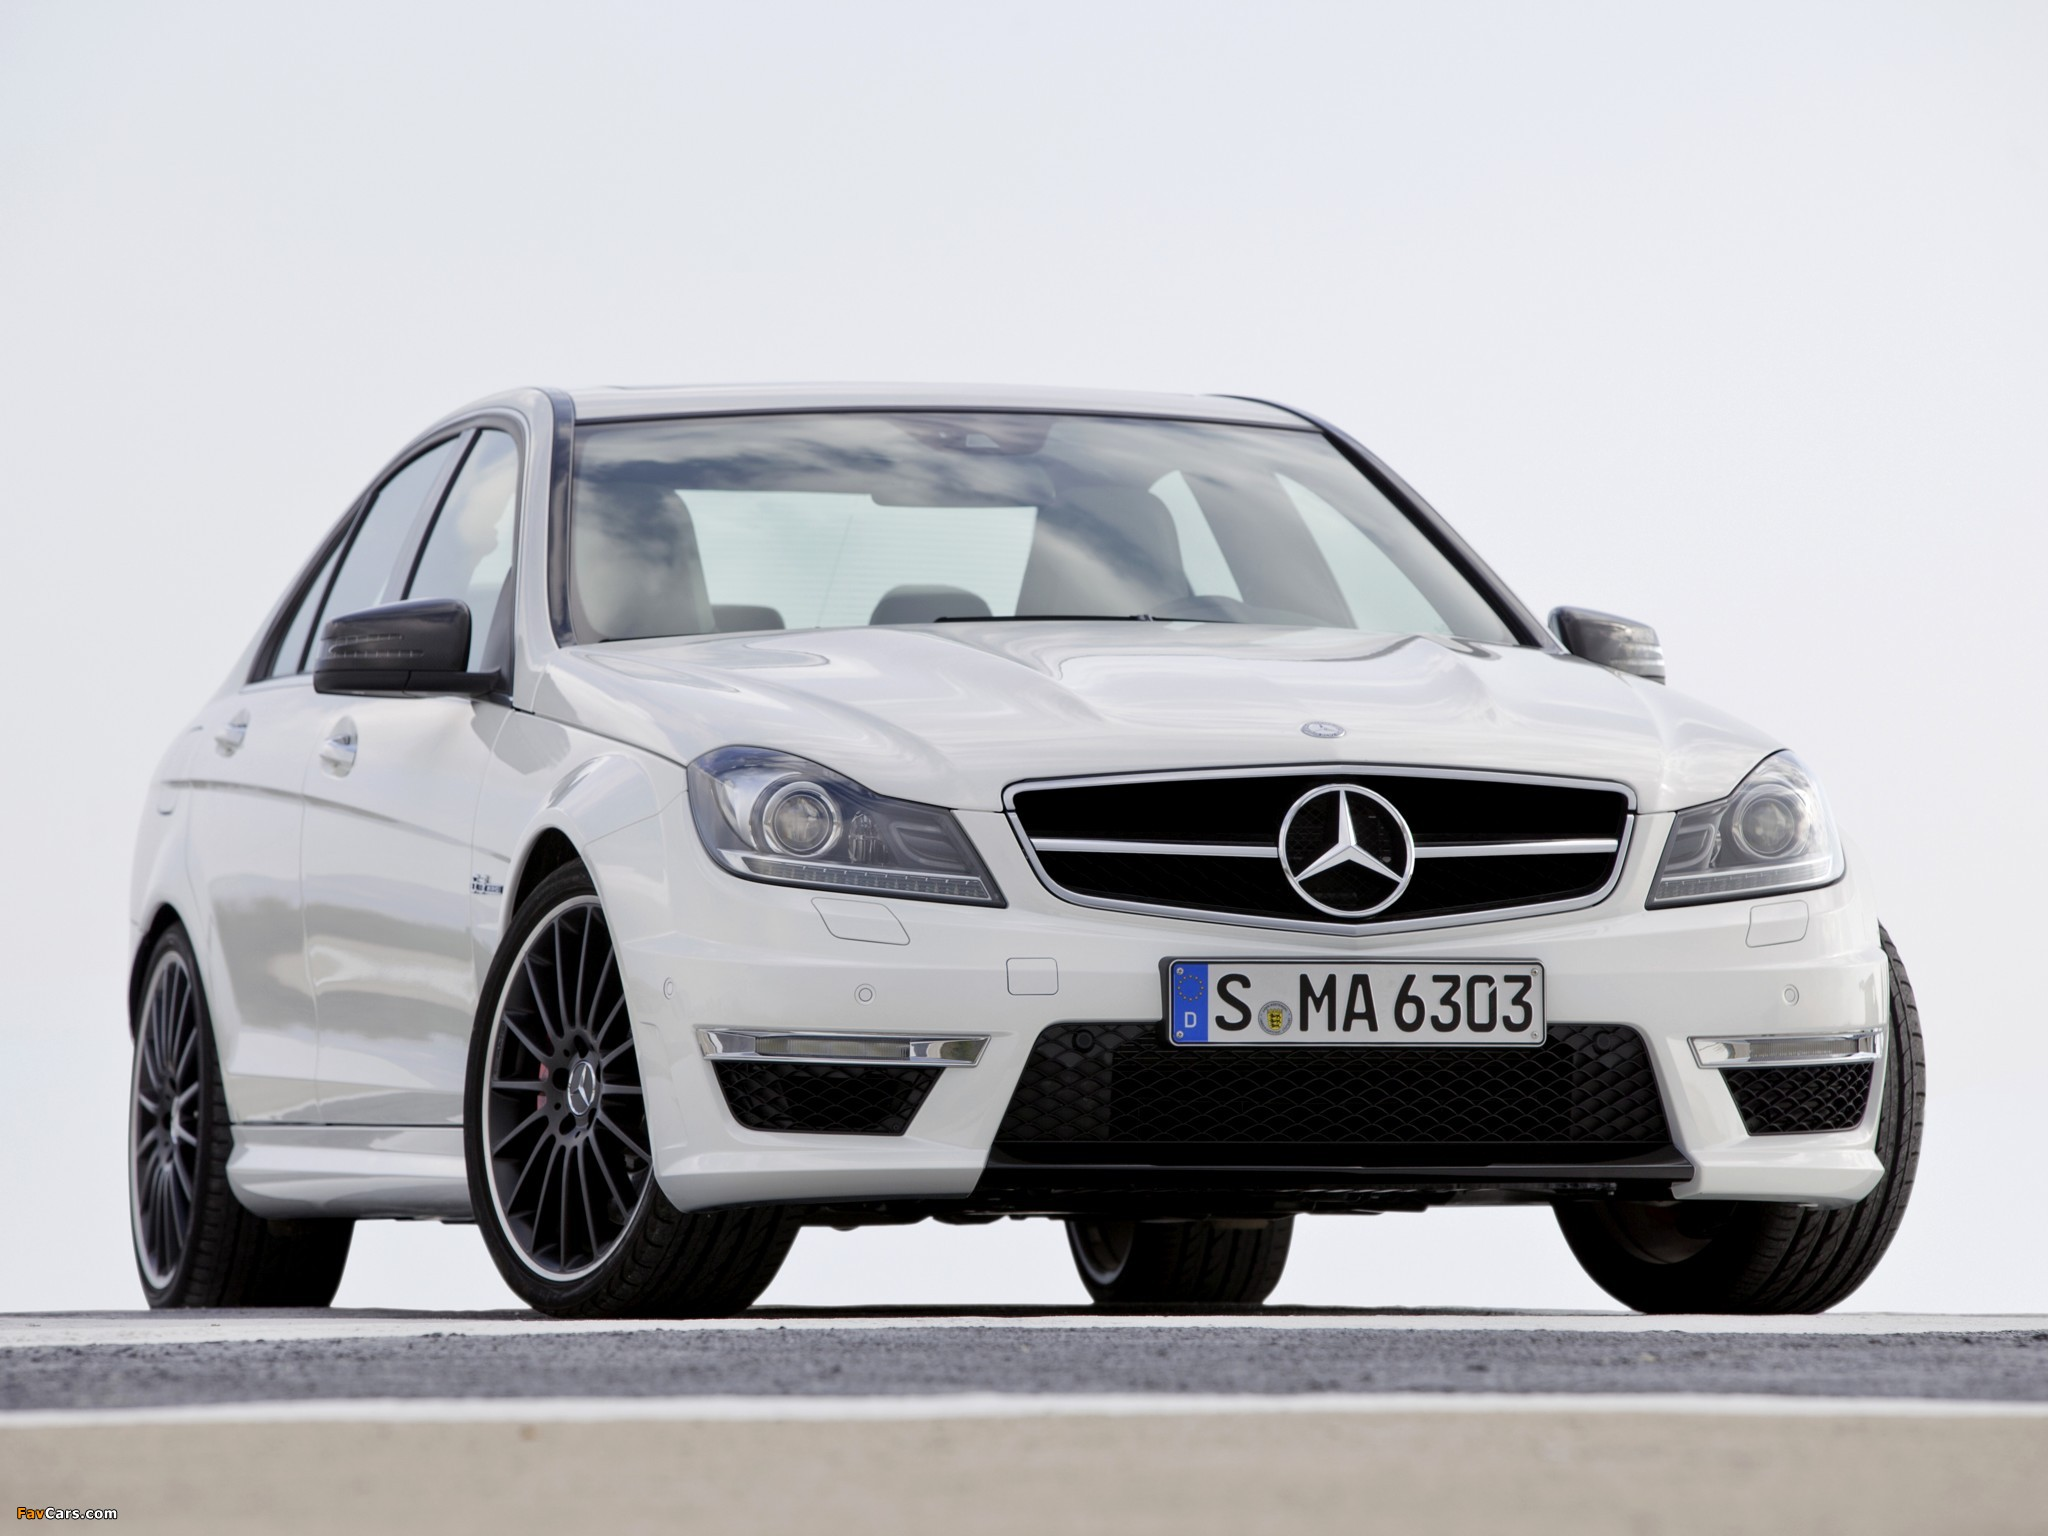 Mercedes-Benz C 63 AMG (W204) 2011 wallpapers (2048 x 1536)